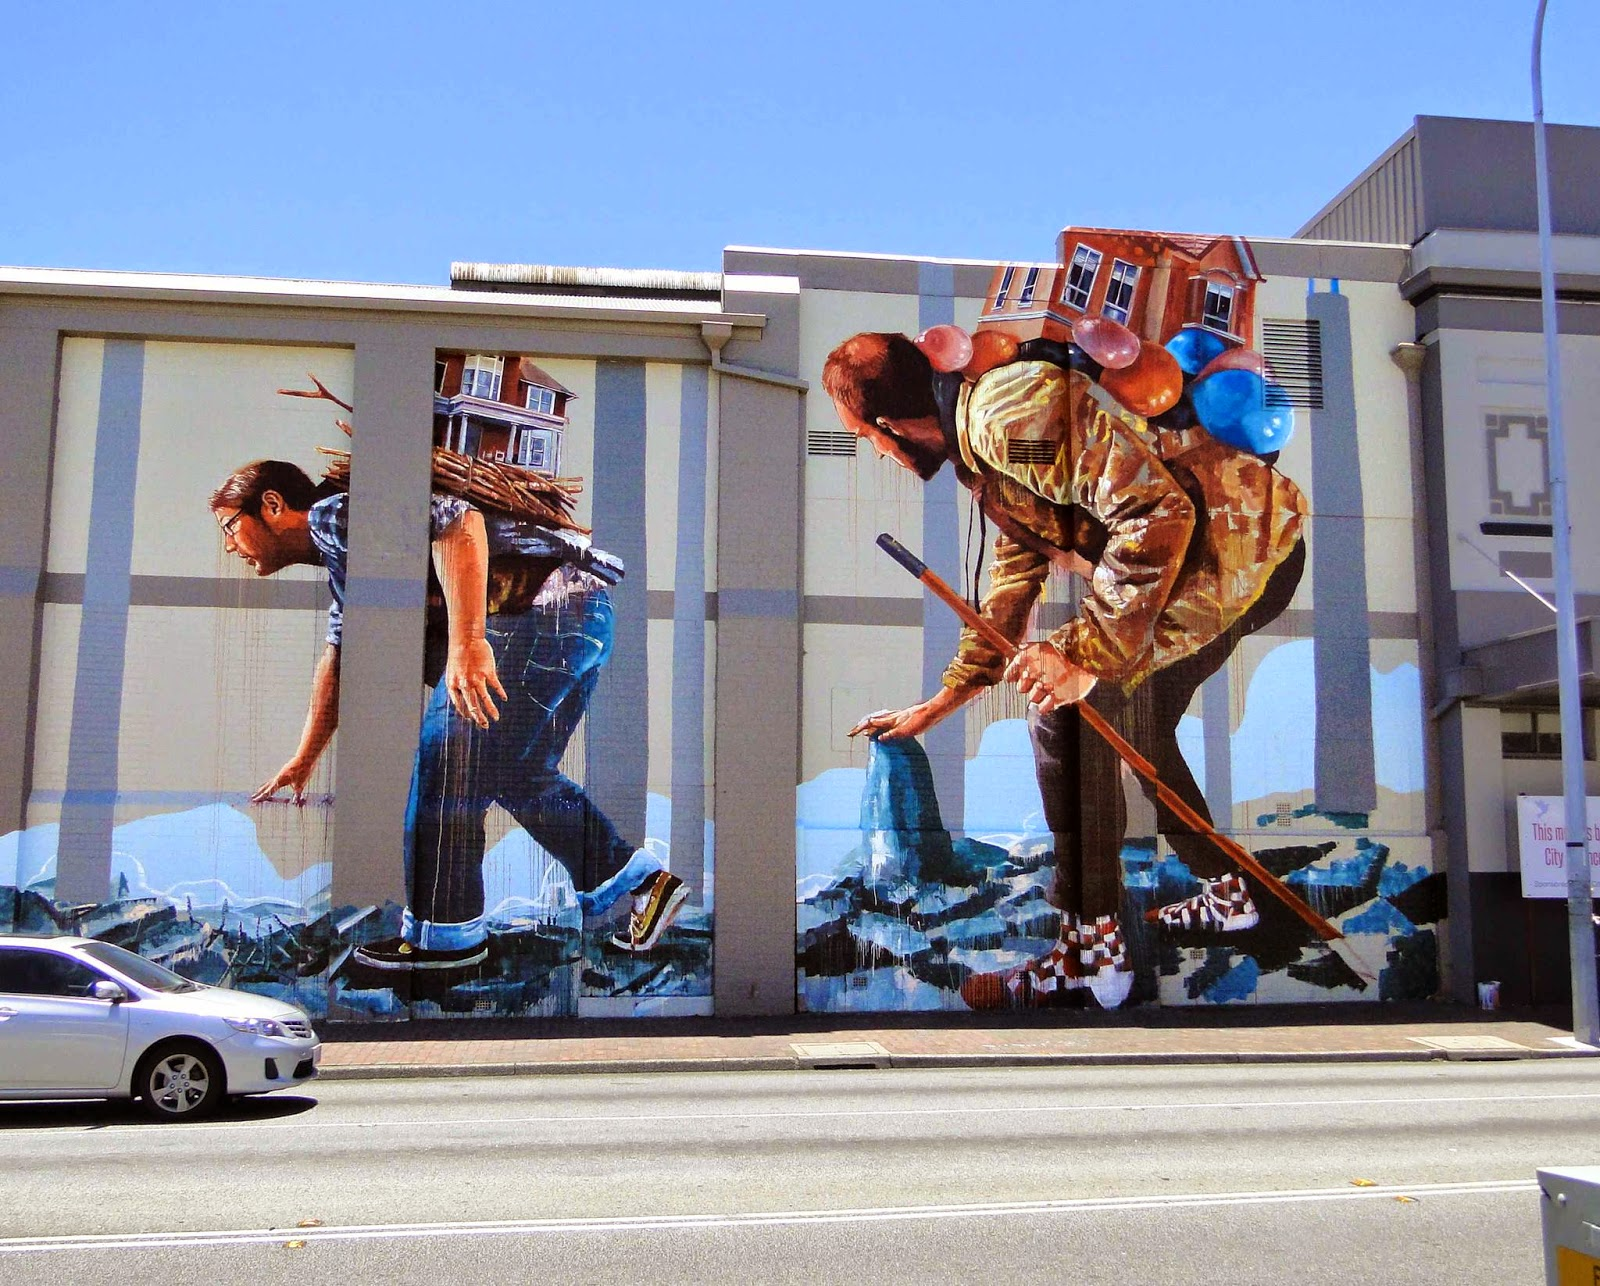 Our friend Fintan Magee is currently in Perth, Australia where he was invited to work on brand new piece.